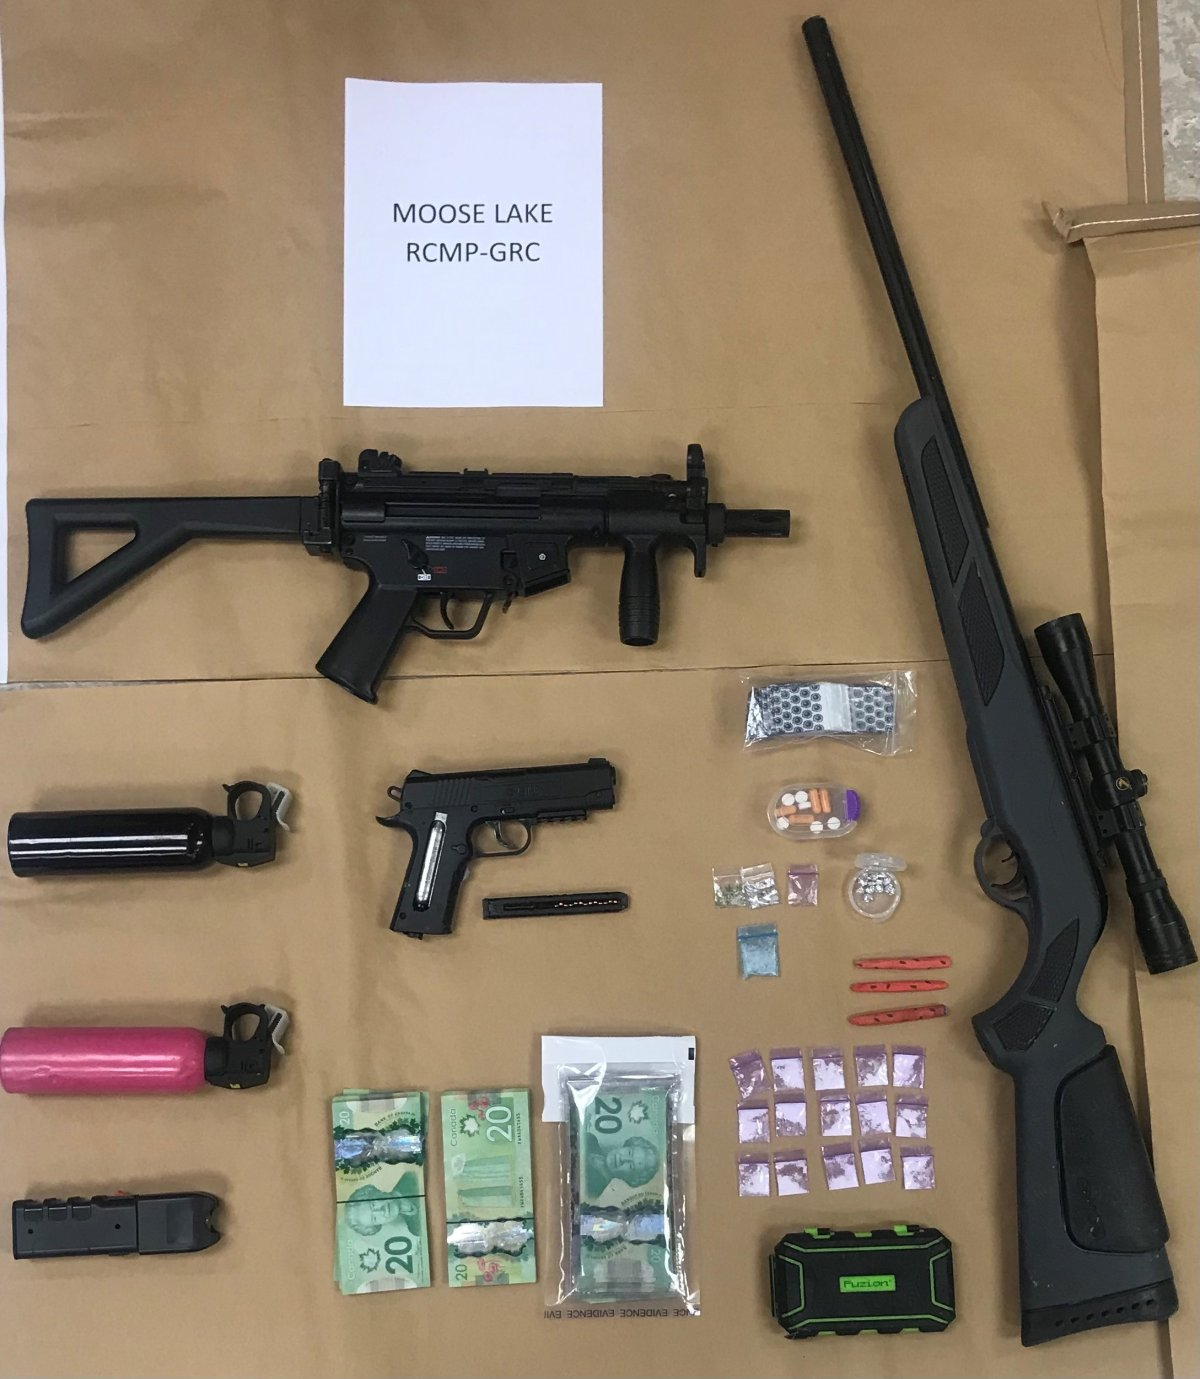 Multiple drugs and pellet guns were seized in Moose Lake.